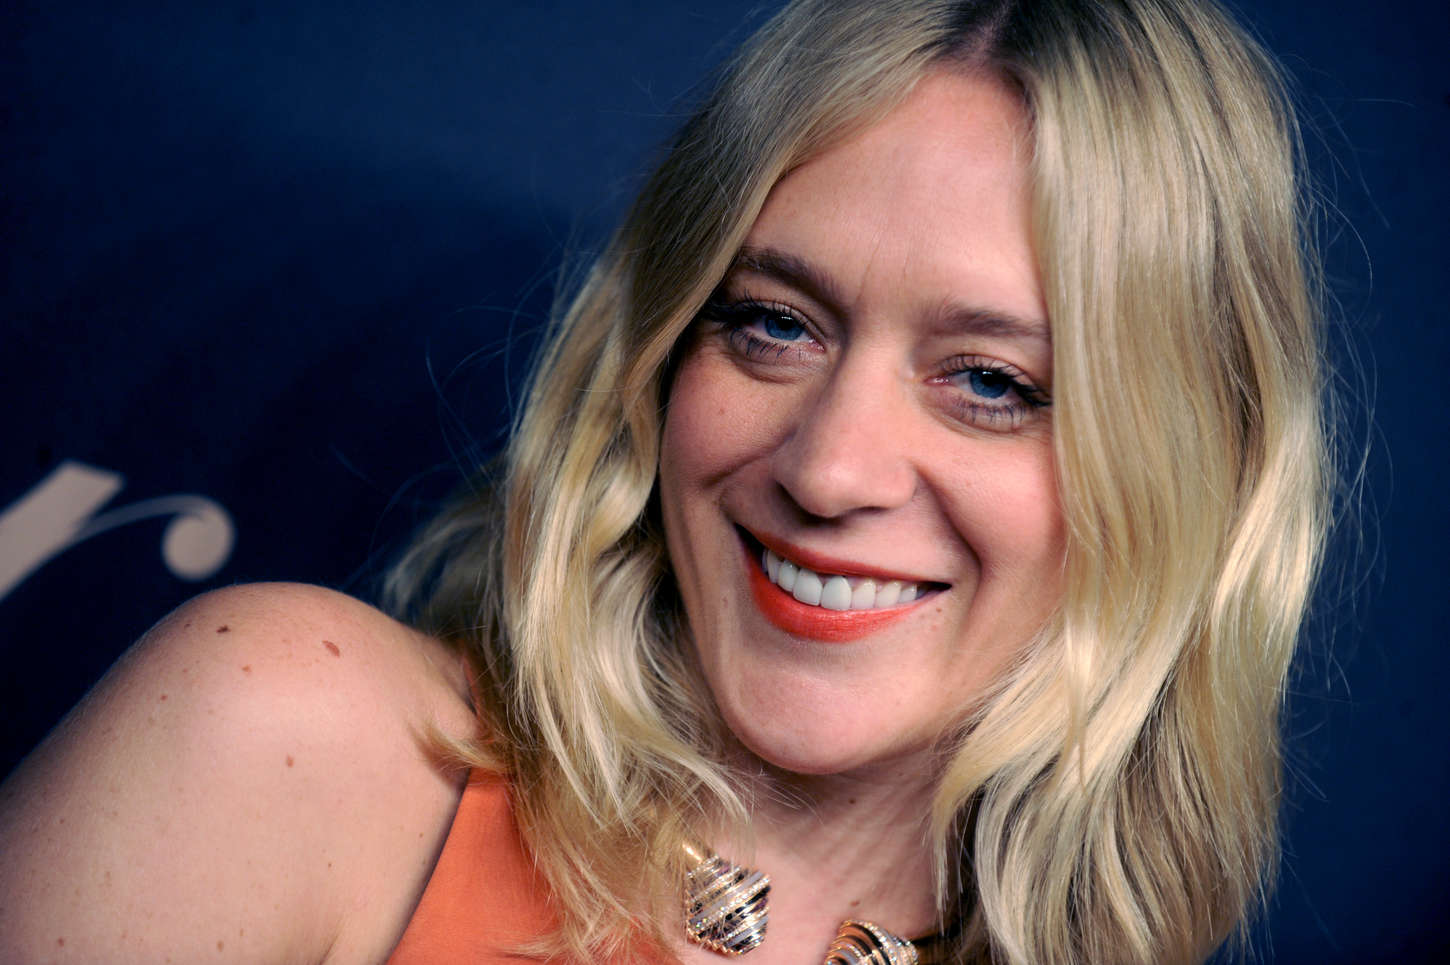 Chloe Sevigny Panthere de Cartier Collection Dinner Party in New York